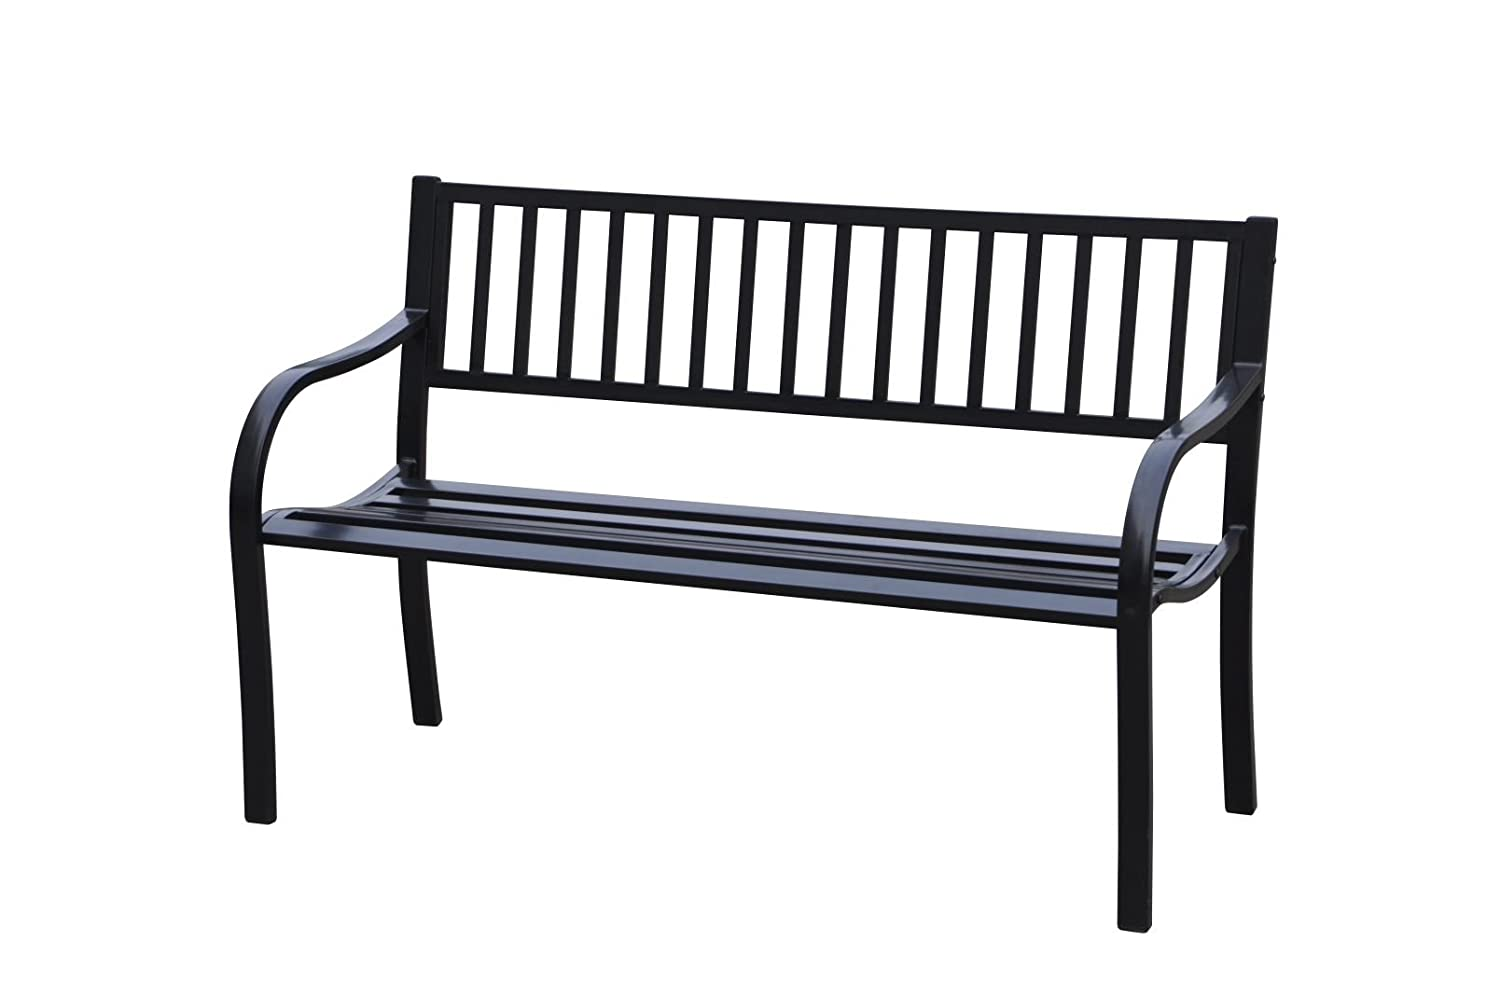 50'L Strap Curved Back Steel Park Bench